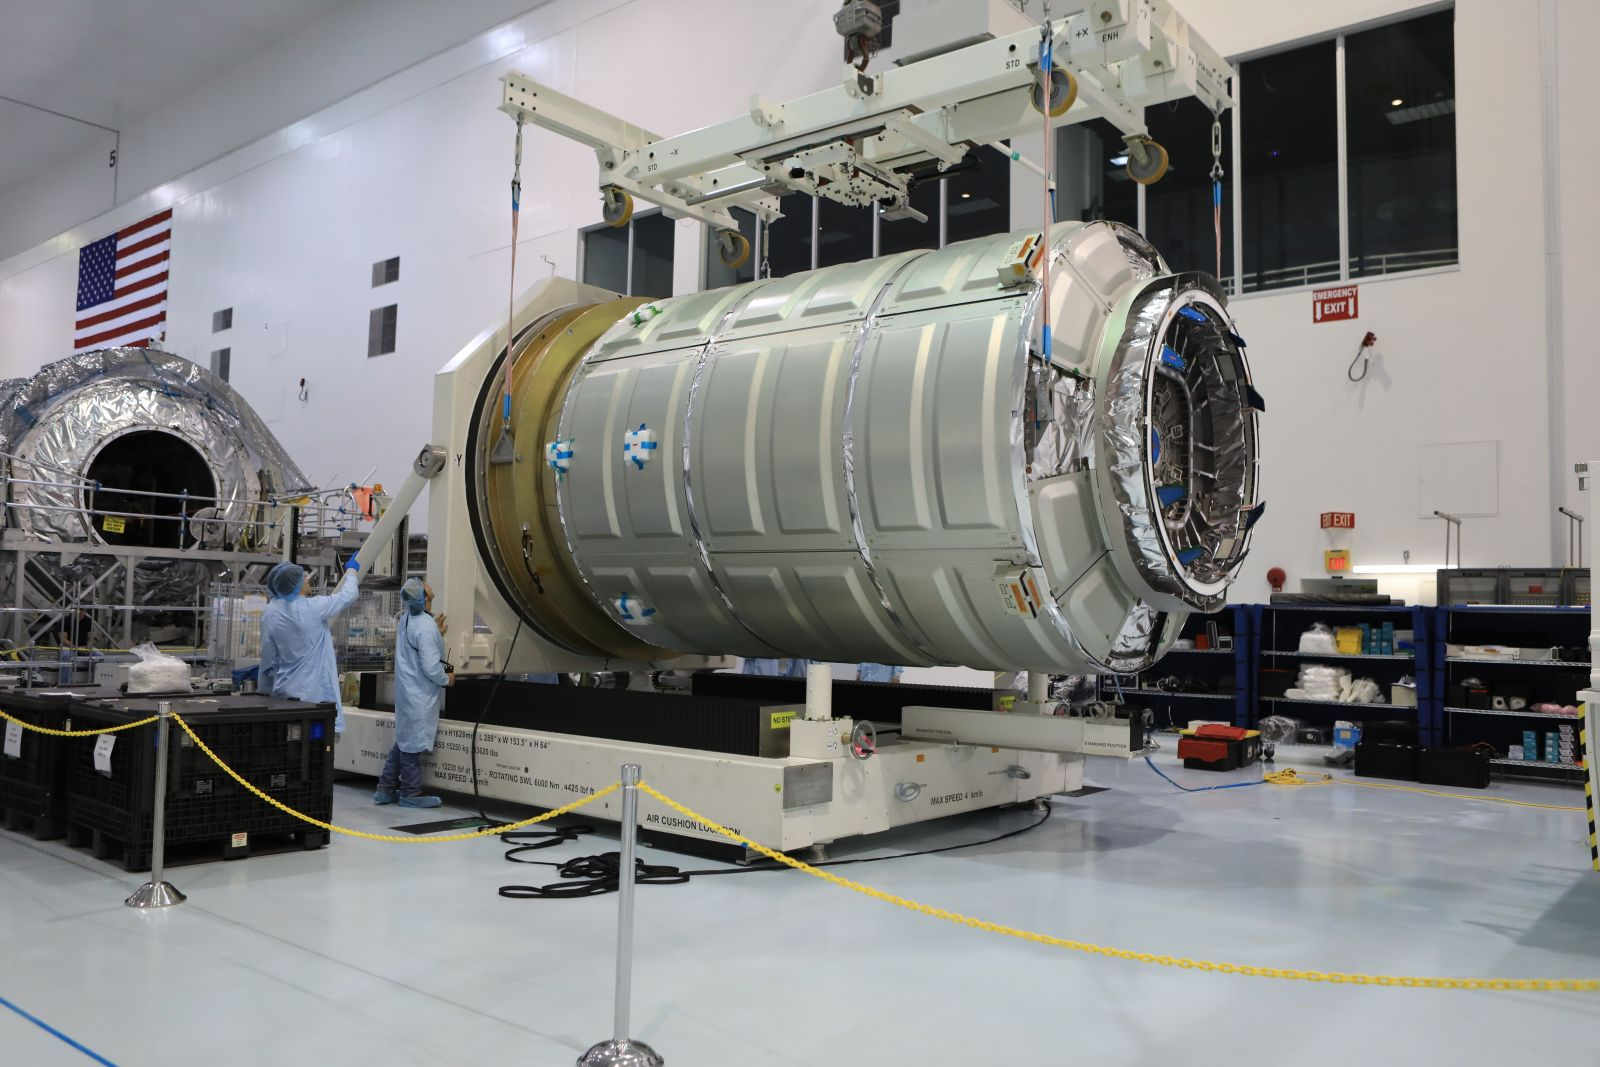 The PCM will now undergo processing assembly and integration in preparation for a March 2017 launch atop a United Launch Alliance Atlas V 401 rocket. Photo Credit: NASA